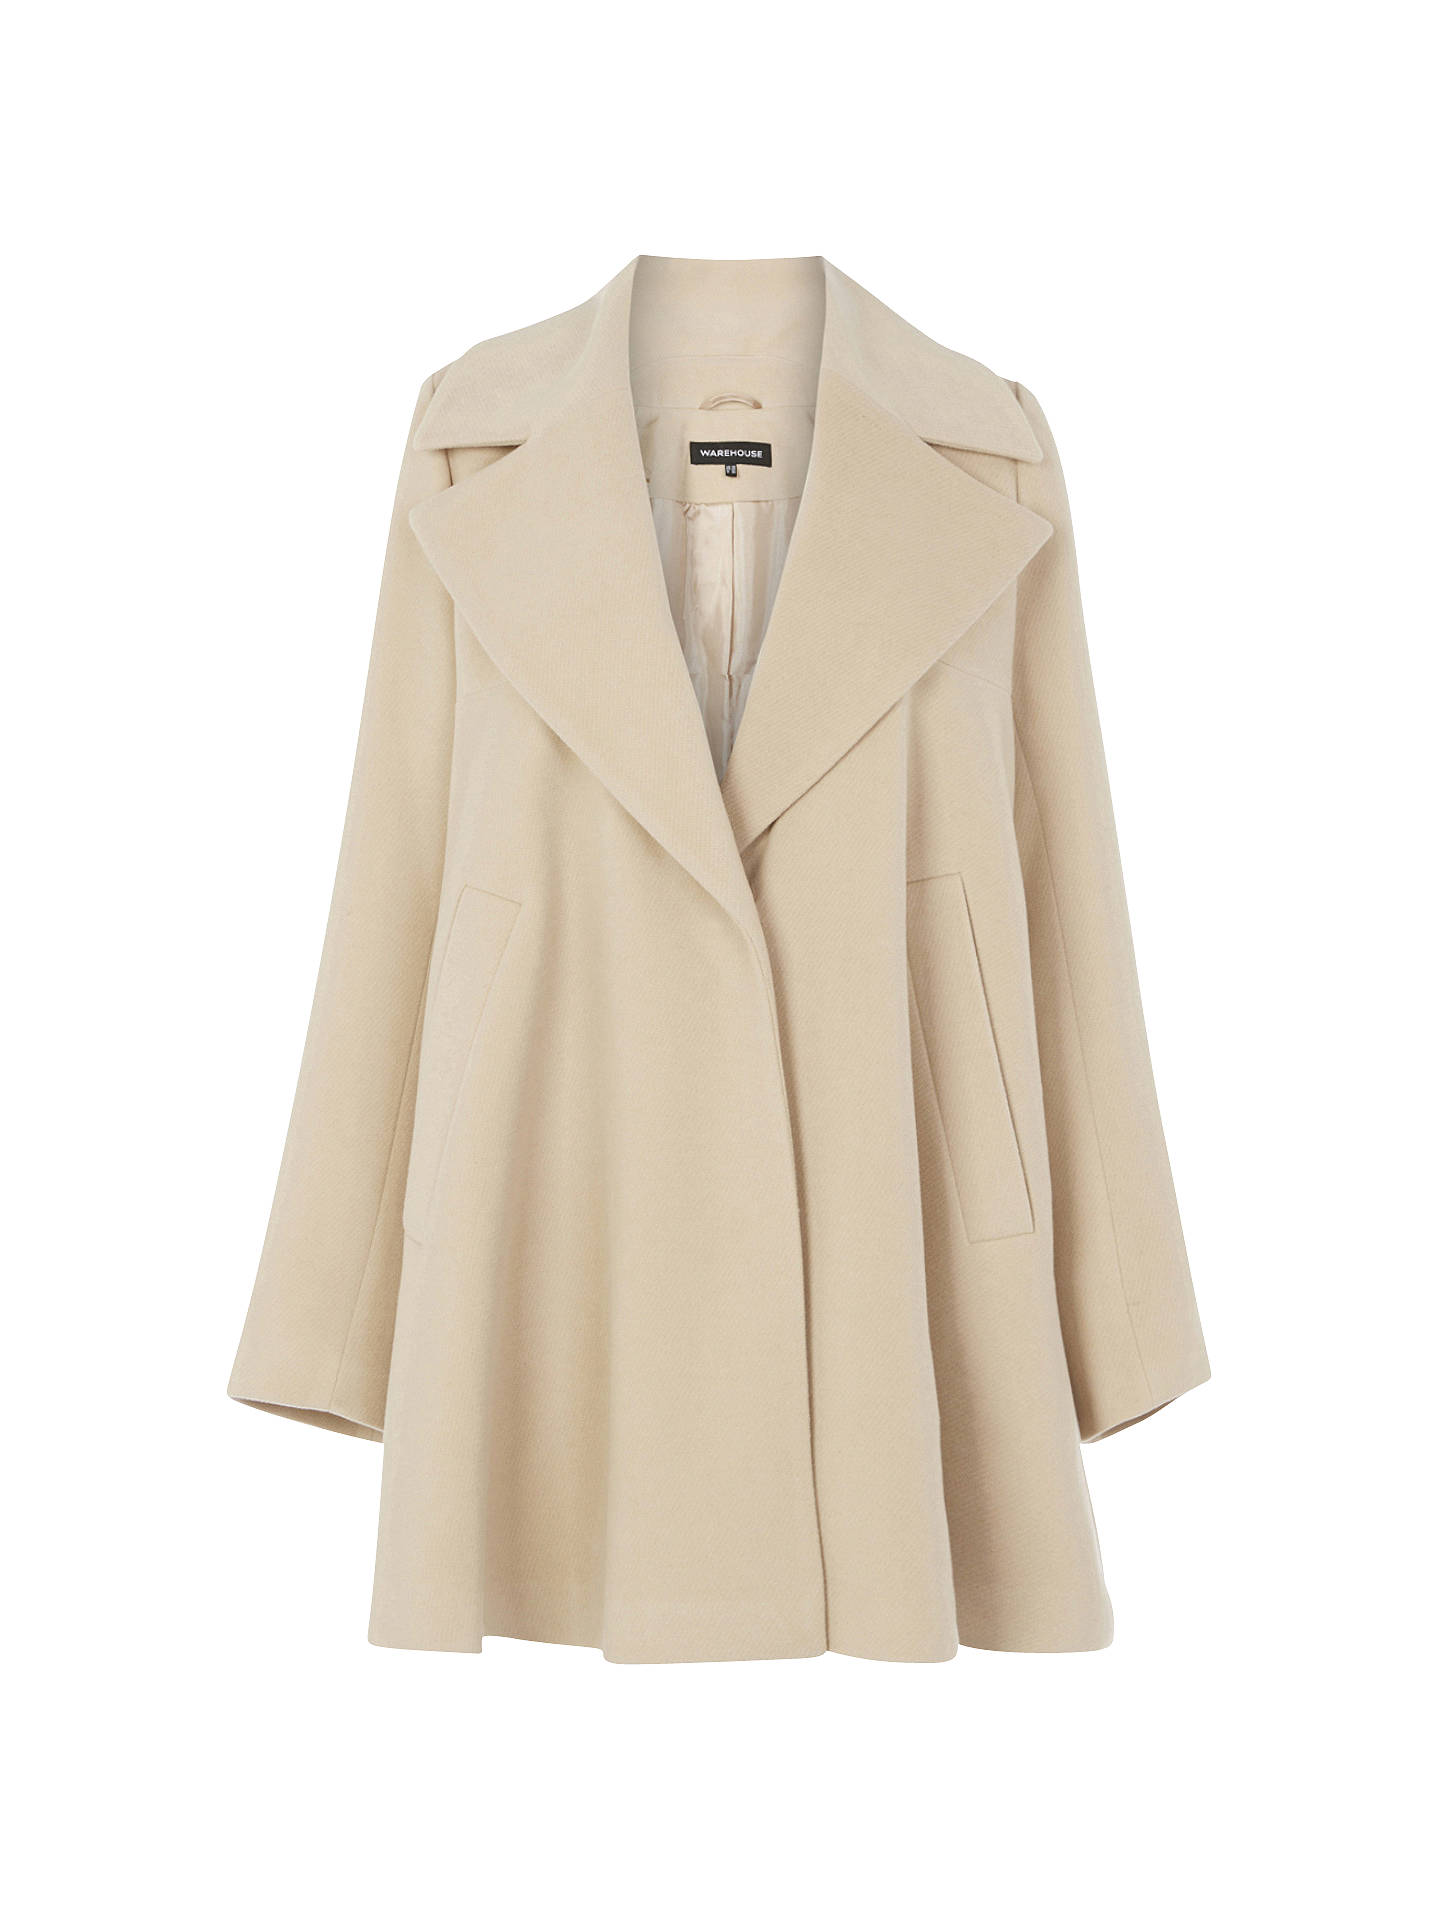 complete in specifications for whole family buy best Warehouse Swing Coat, Camel at John Lewis & Partners